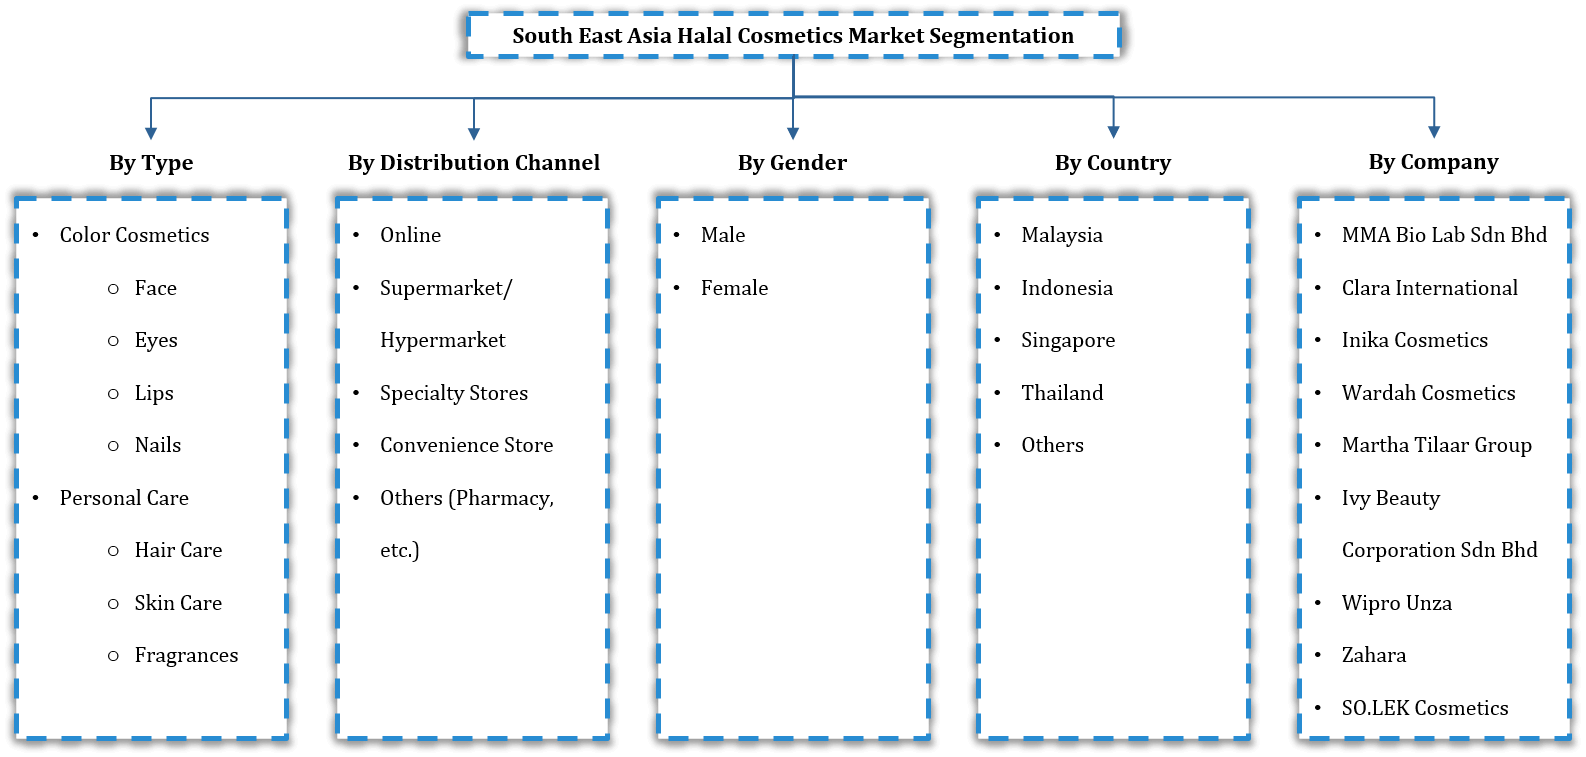 South East Asia Halal Cosmetics Market Segmentation